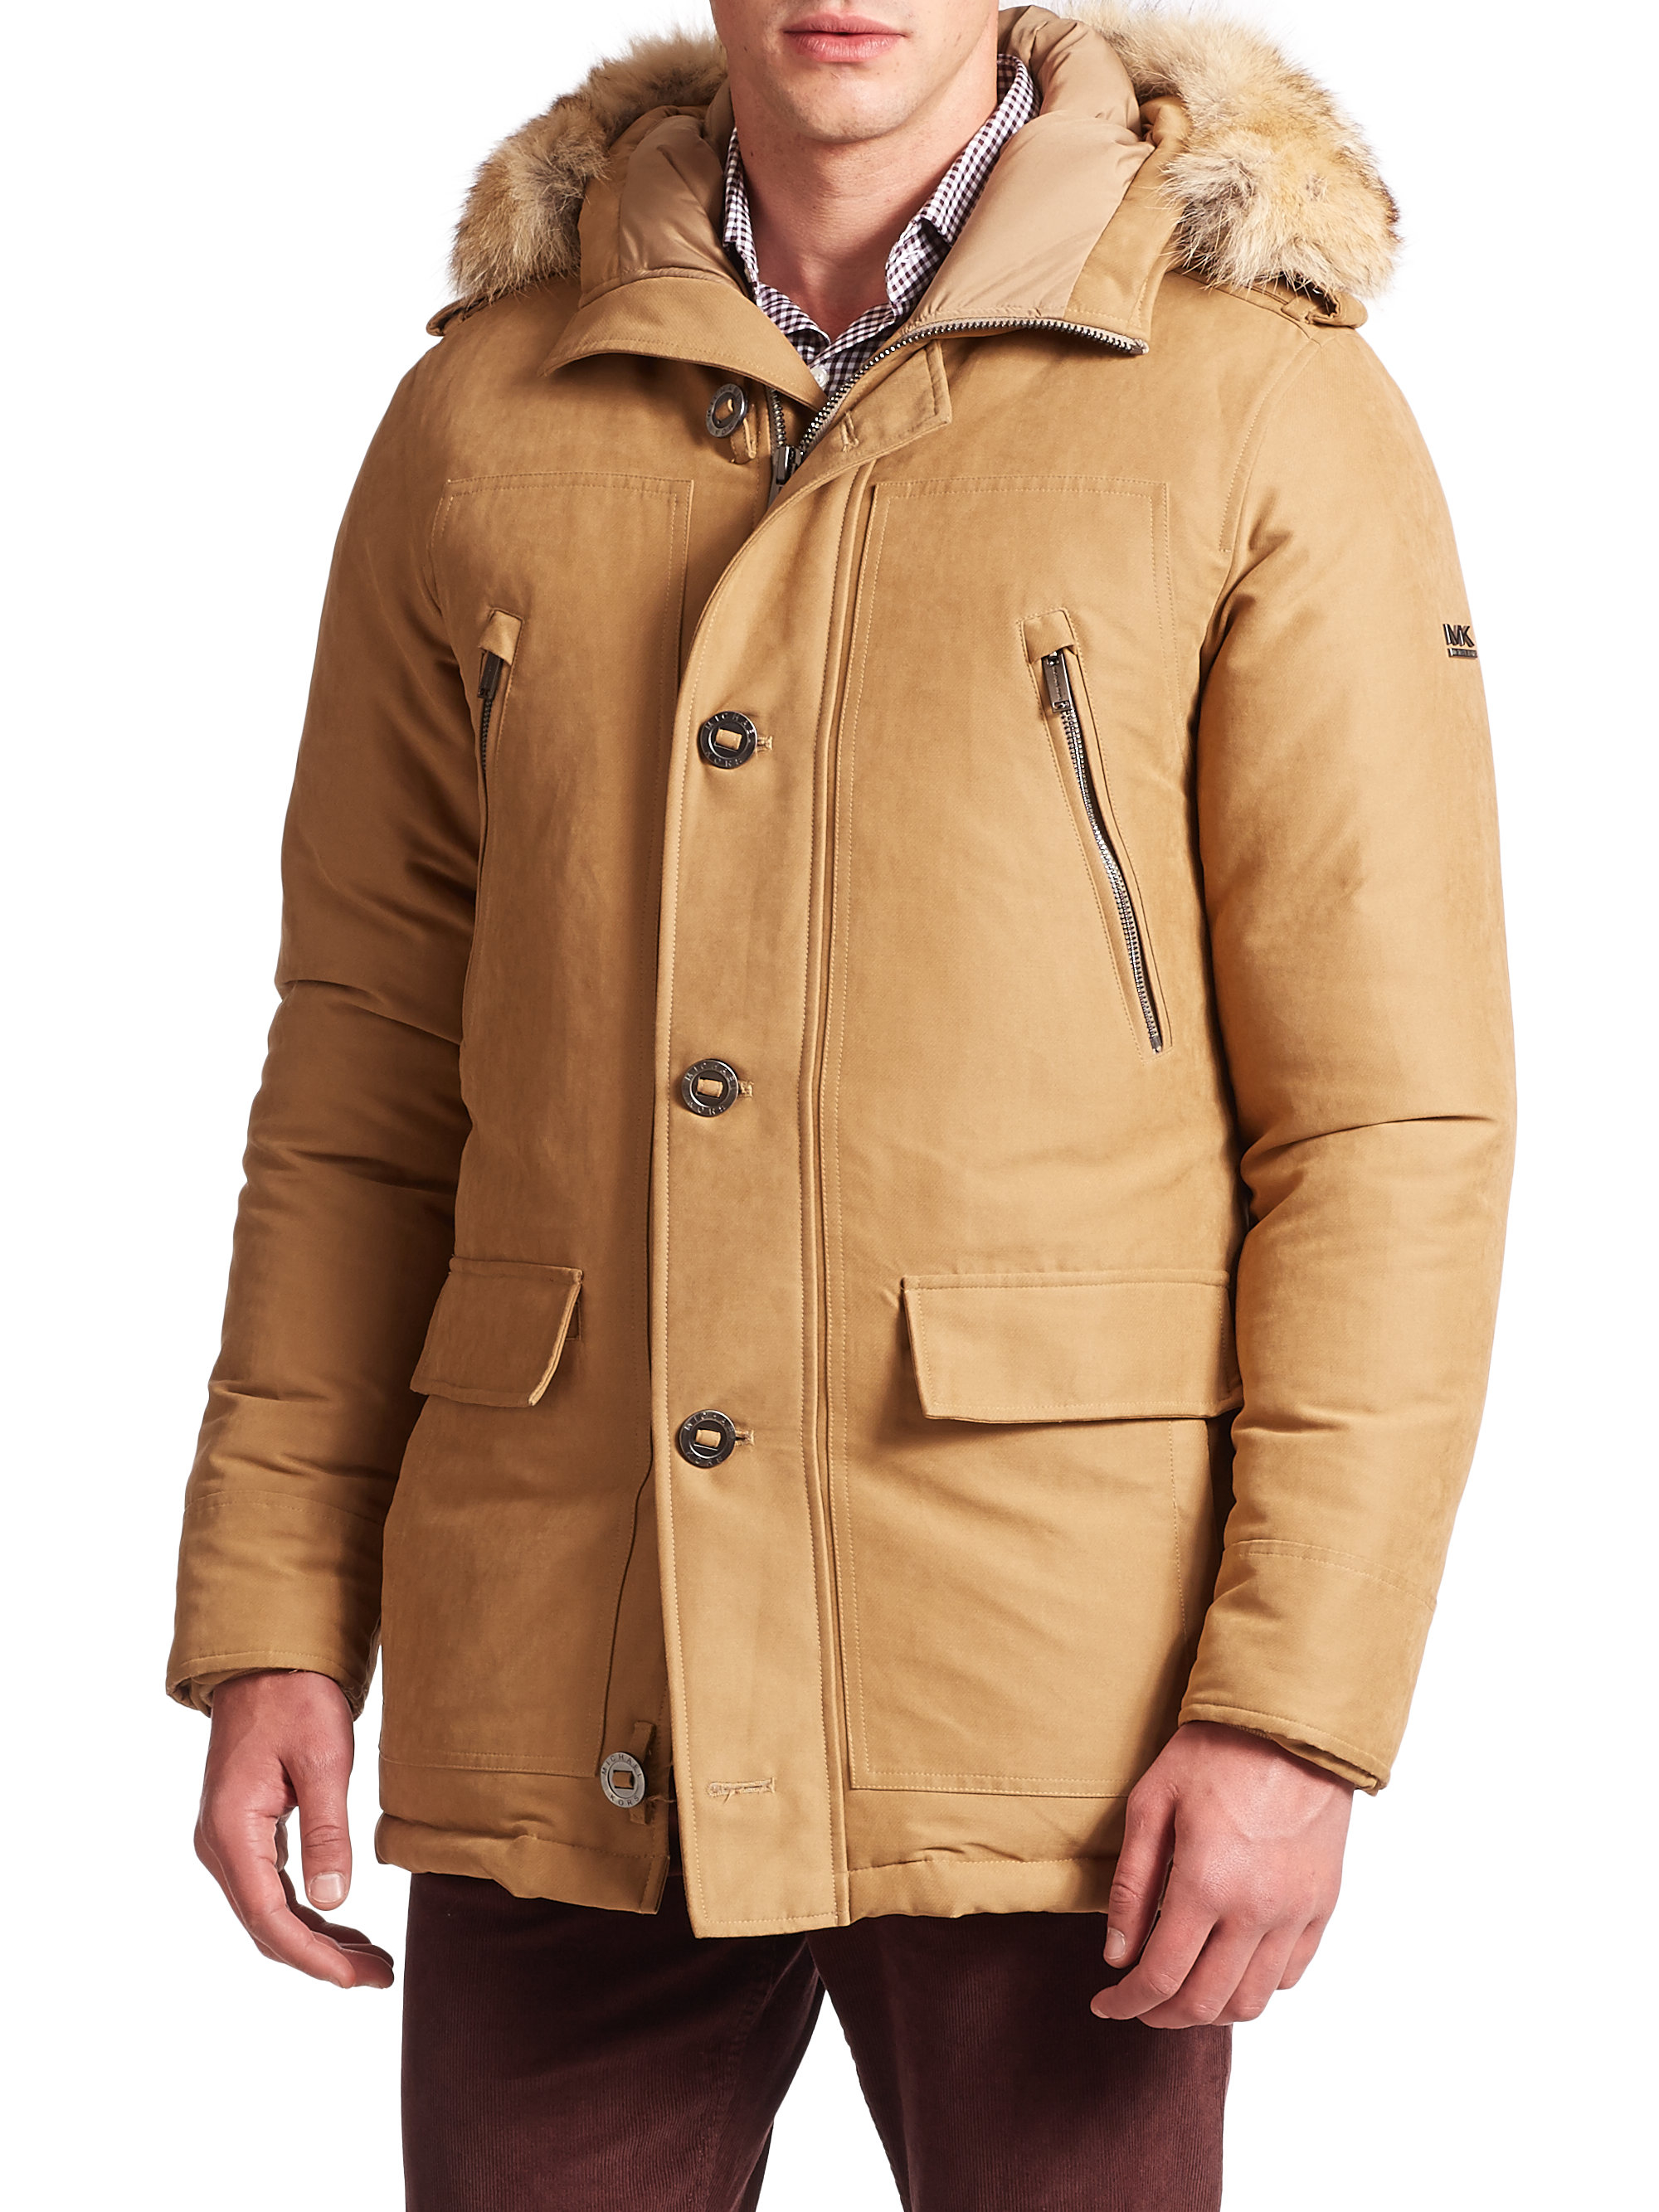 parker men Shop jcrewcom for men's parkas and see our entire selection of parkas, jackets and more outerwear for men.